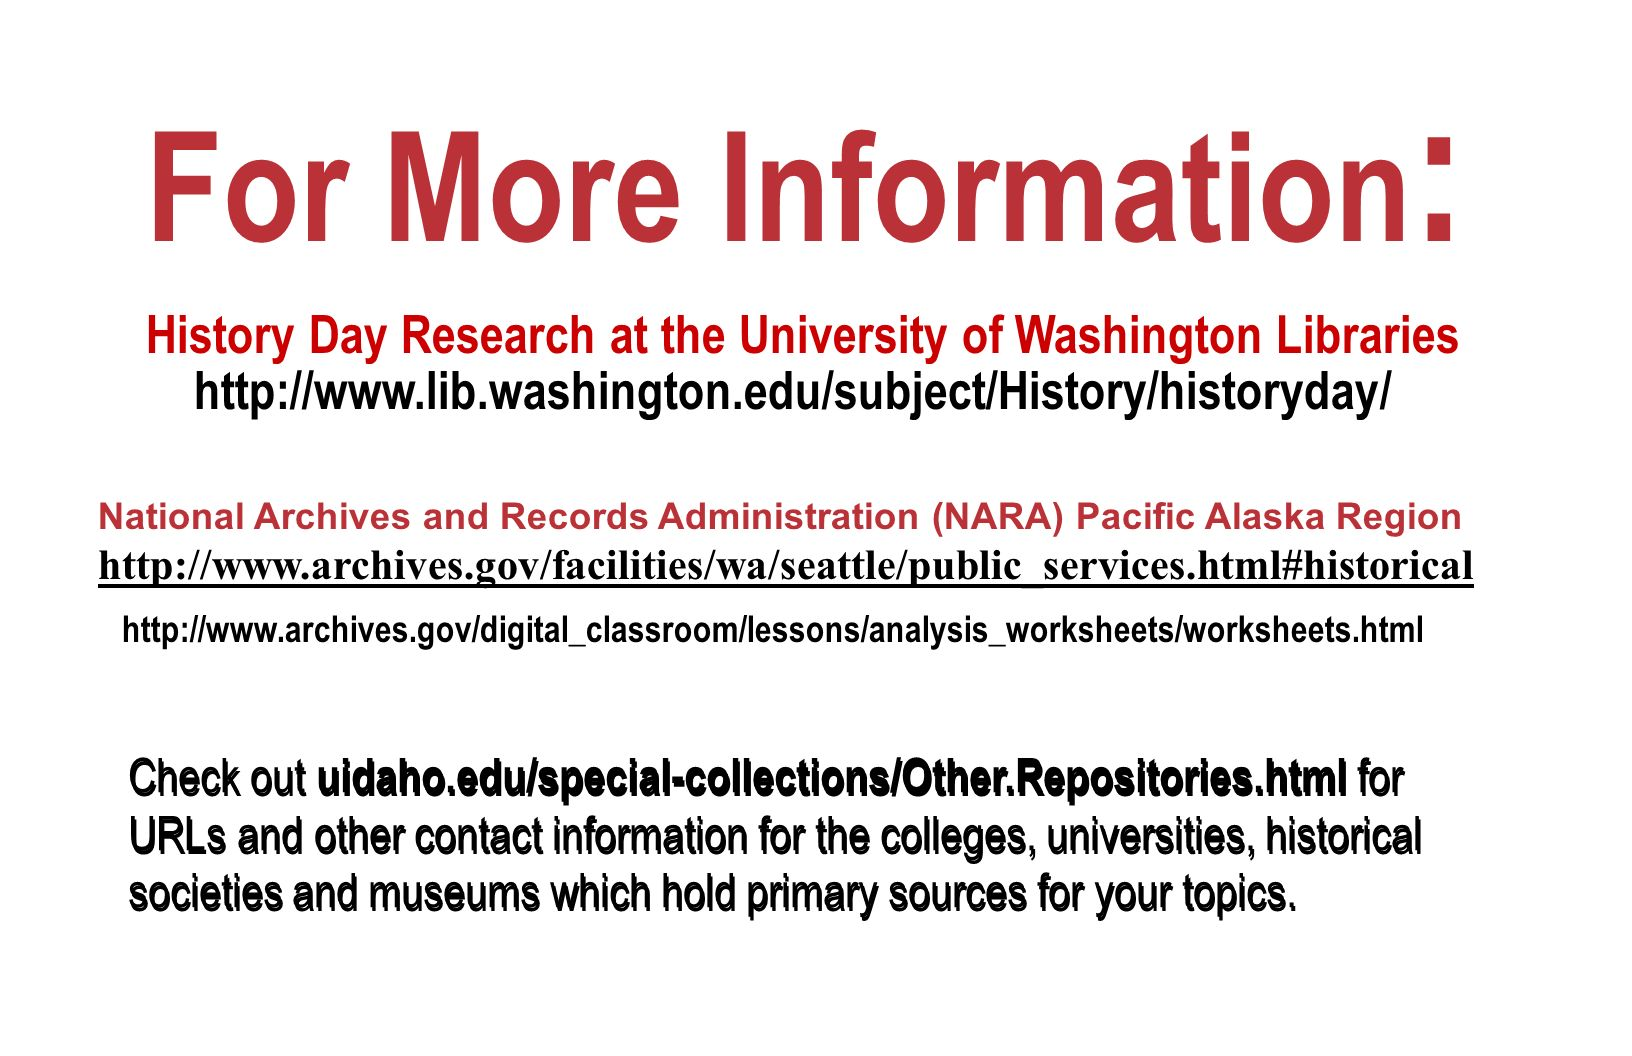 For More Information: History Day Research at the University of Washington Libraries.